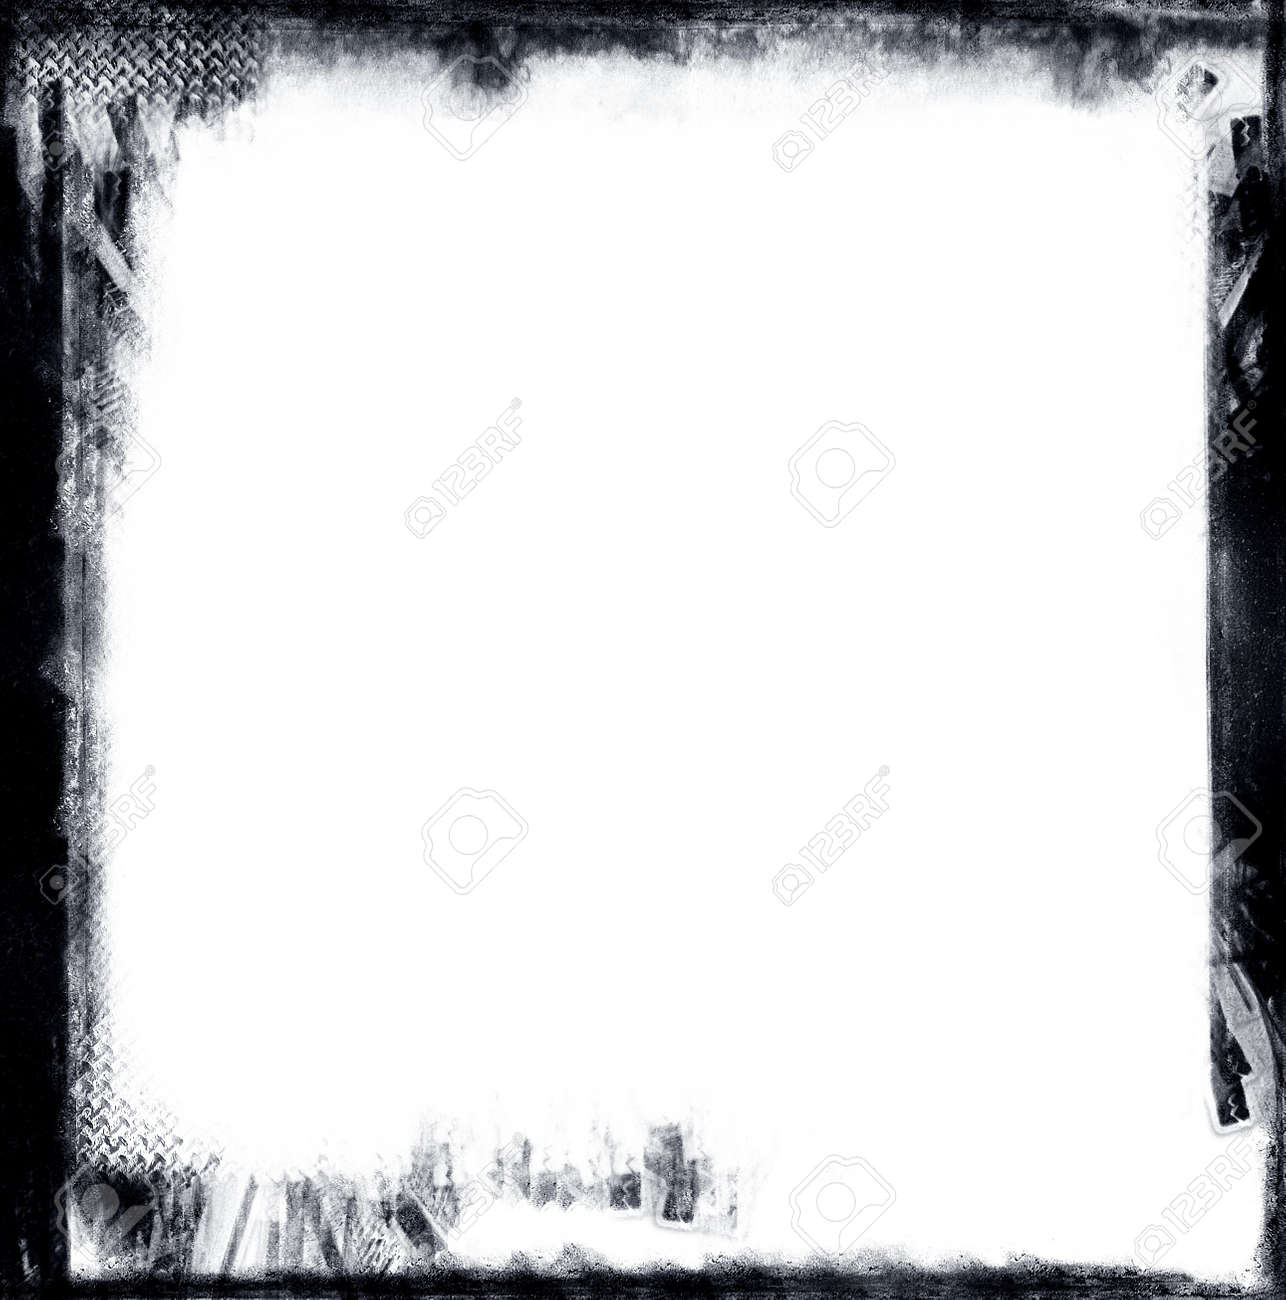 Computed designed gronge black border over white nice grunge element for your projects stock photo